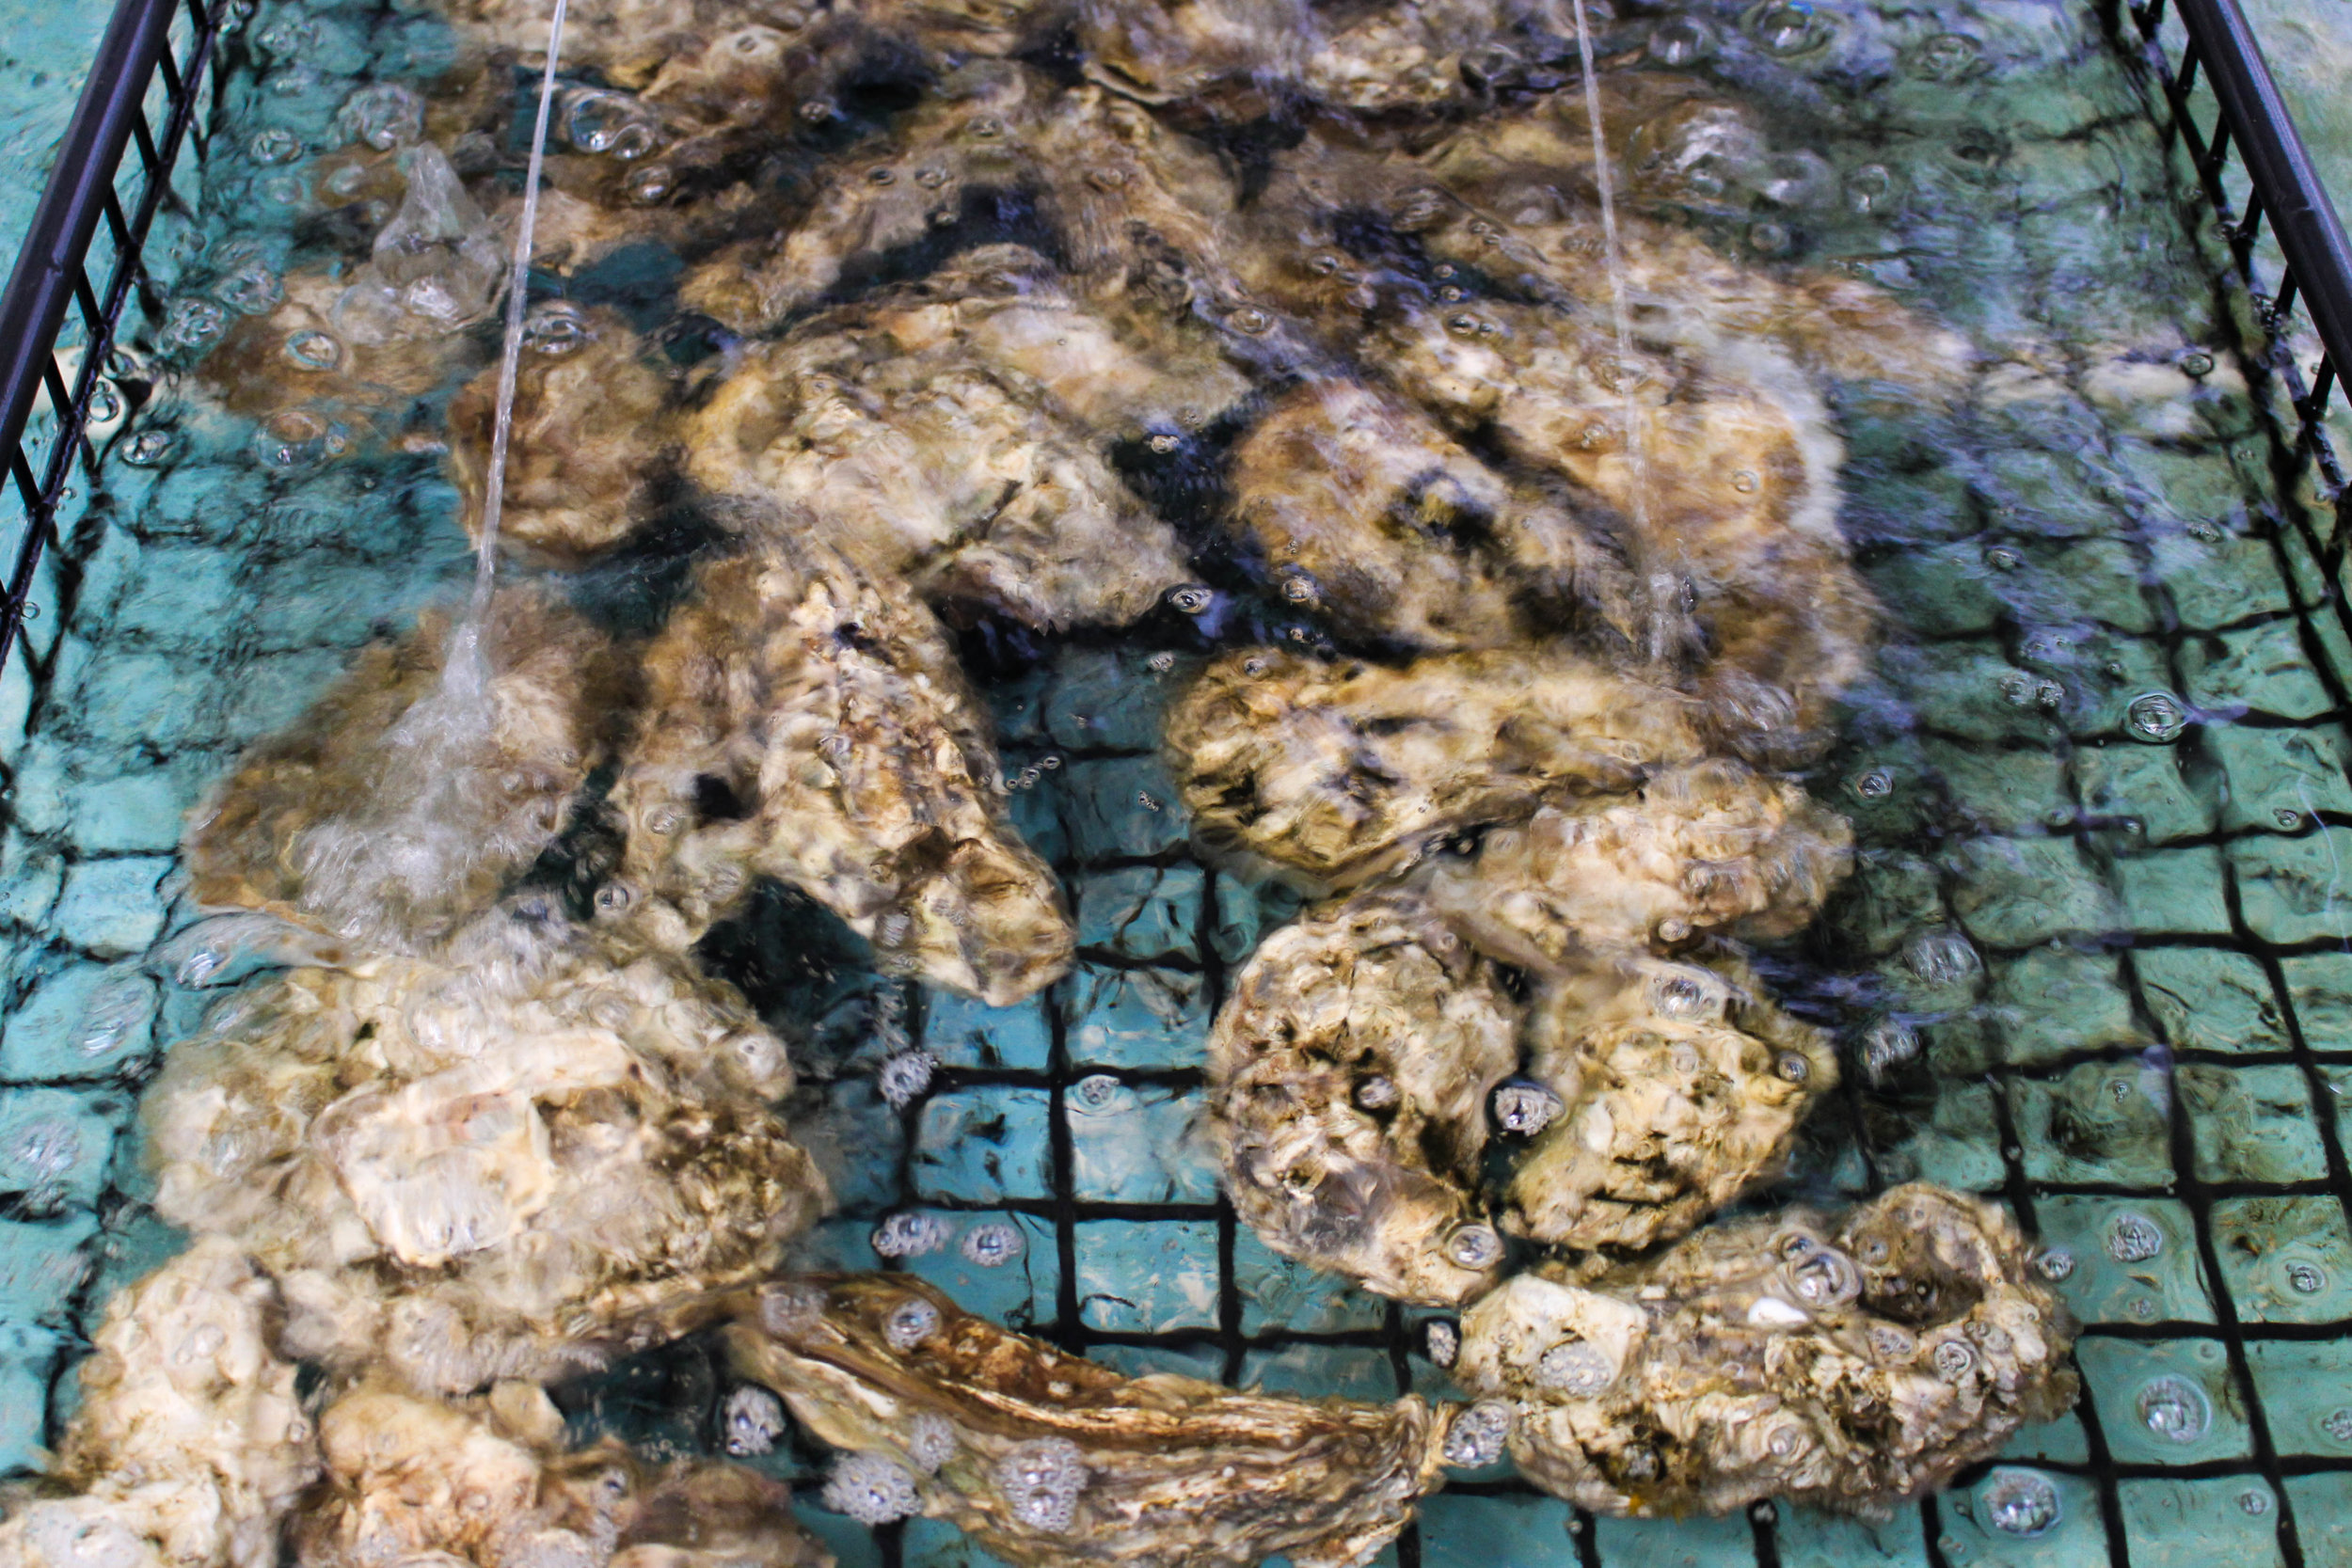 Oysters at Taylor Shellfish Hatchery. Photo Credit: Maxim Podhaisky